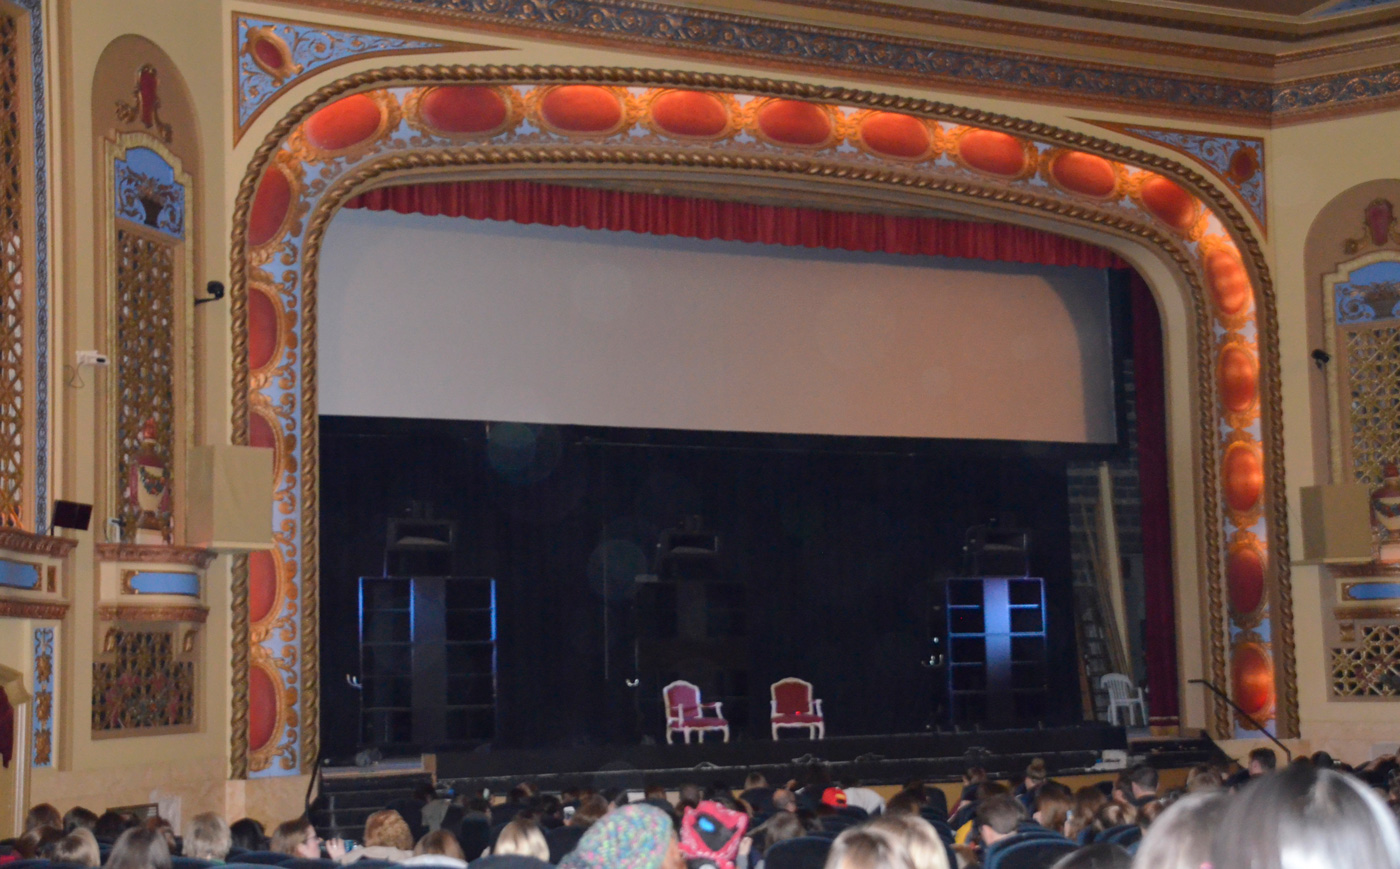 Tivoli Theater In Downers Grove Celebrate An Historic Literary Event The Release Of Harper Lee S